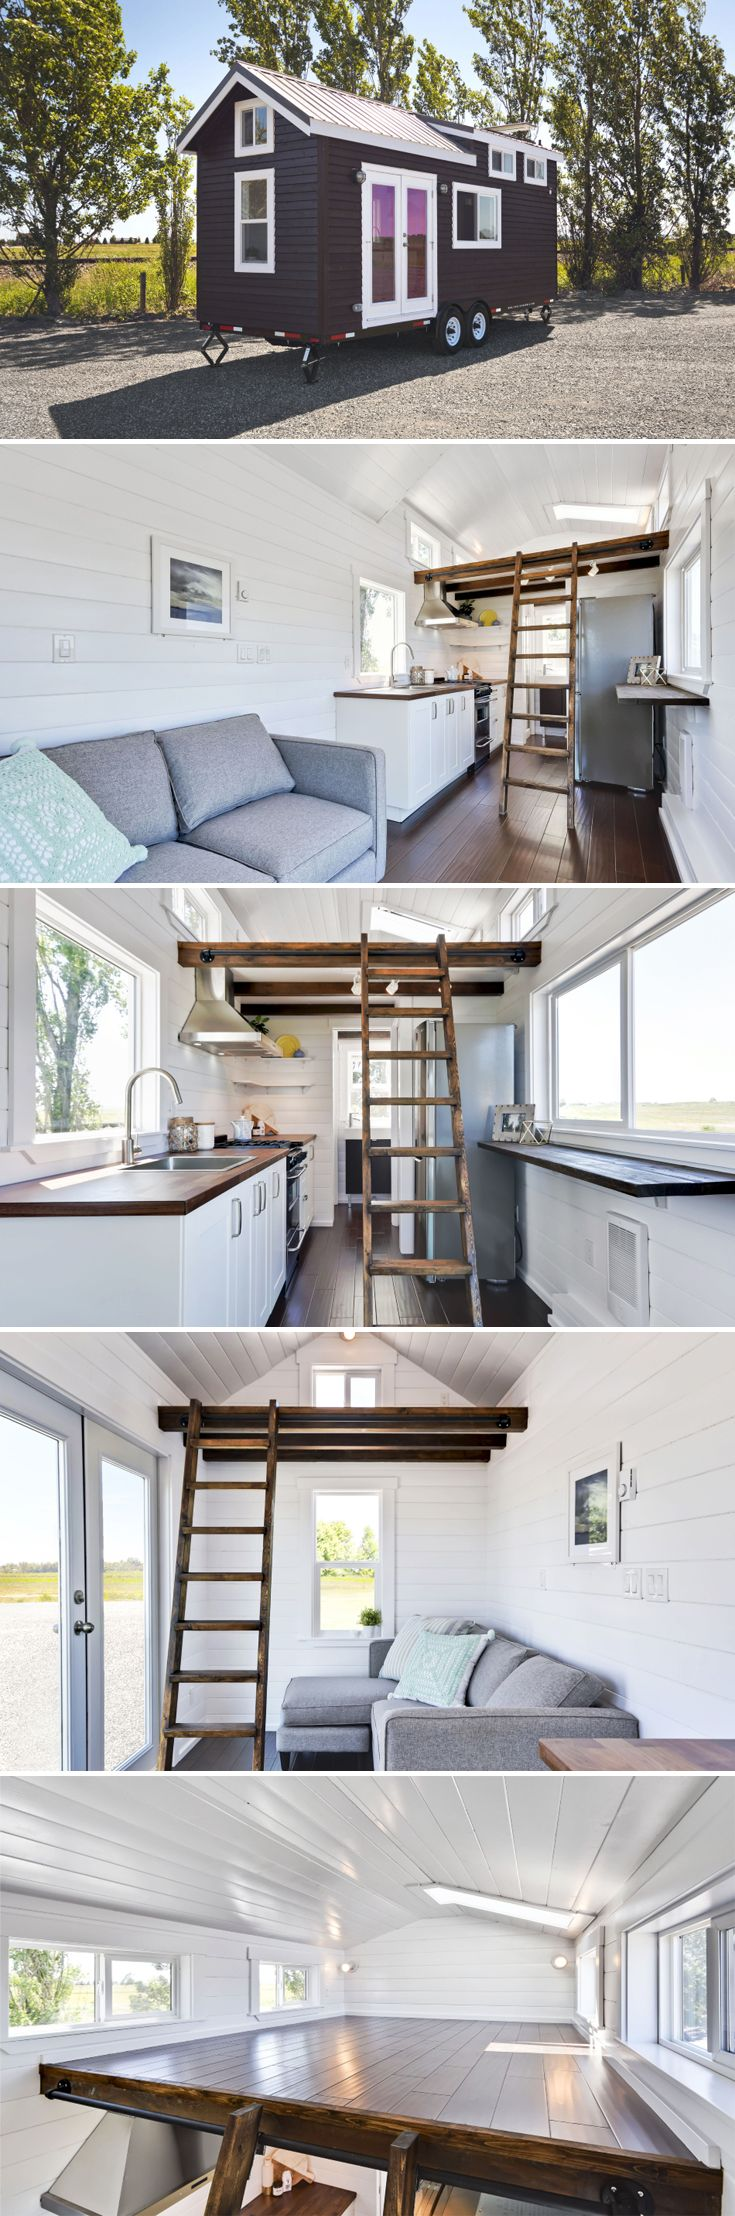 Just Wahls Tiny House Sm Hus Och Hus